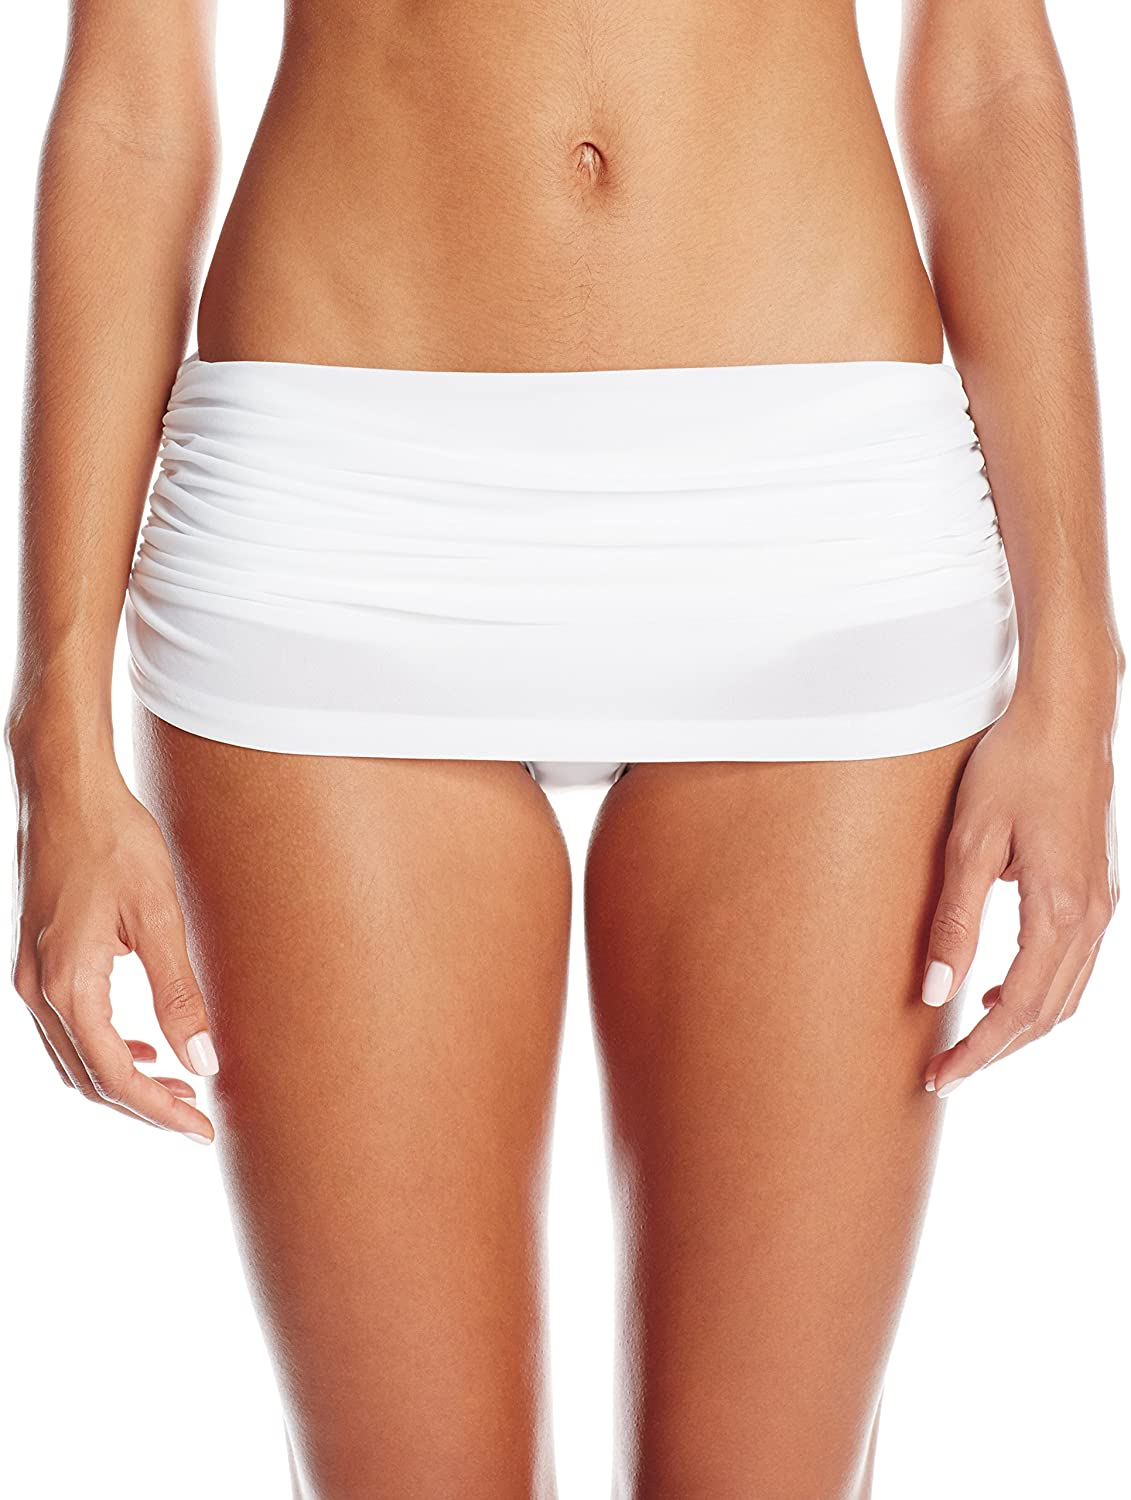 Norma Kamali Women's Low Rise Bill Bikini Bottom